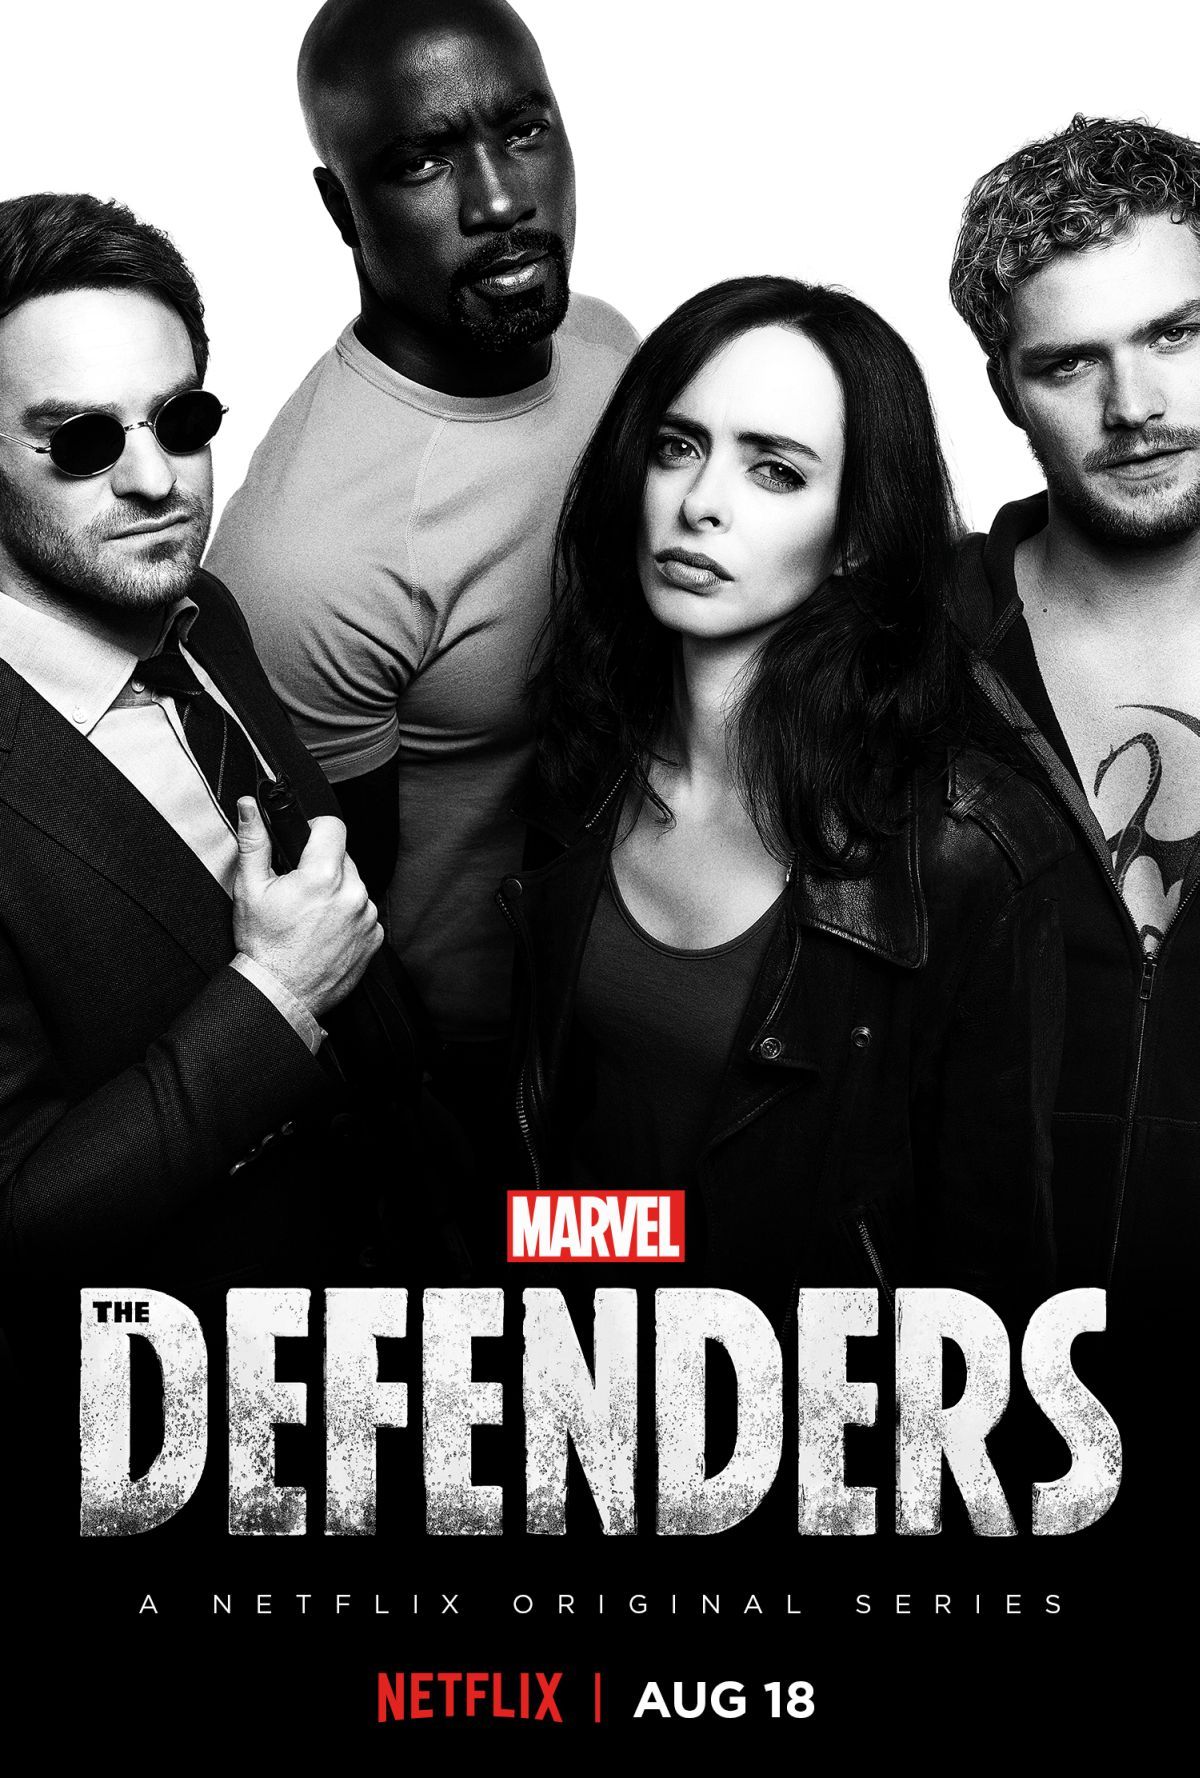 Marvel's The Defenders Join Together in New Poster